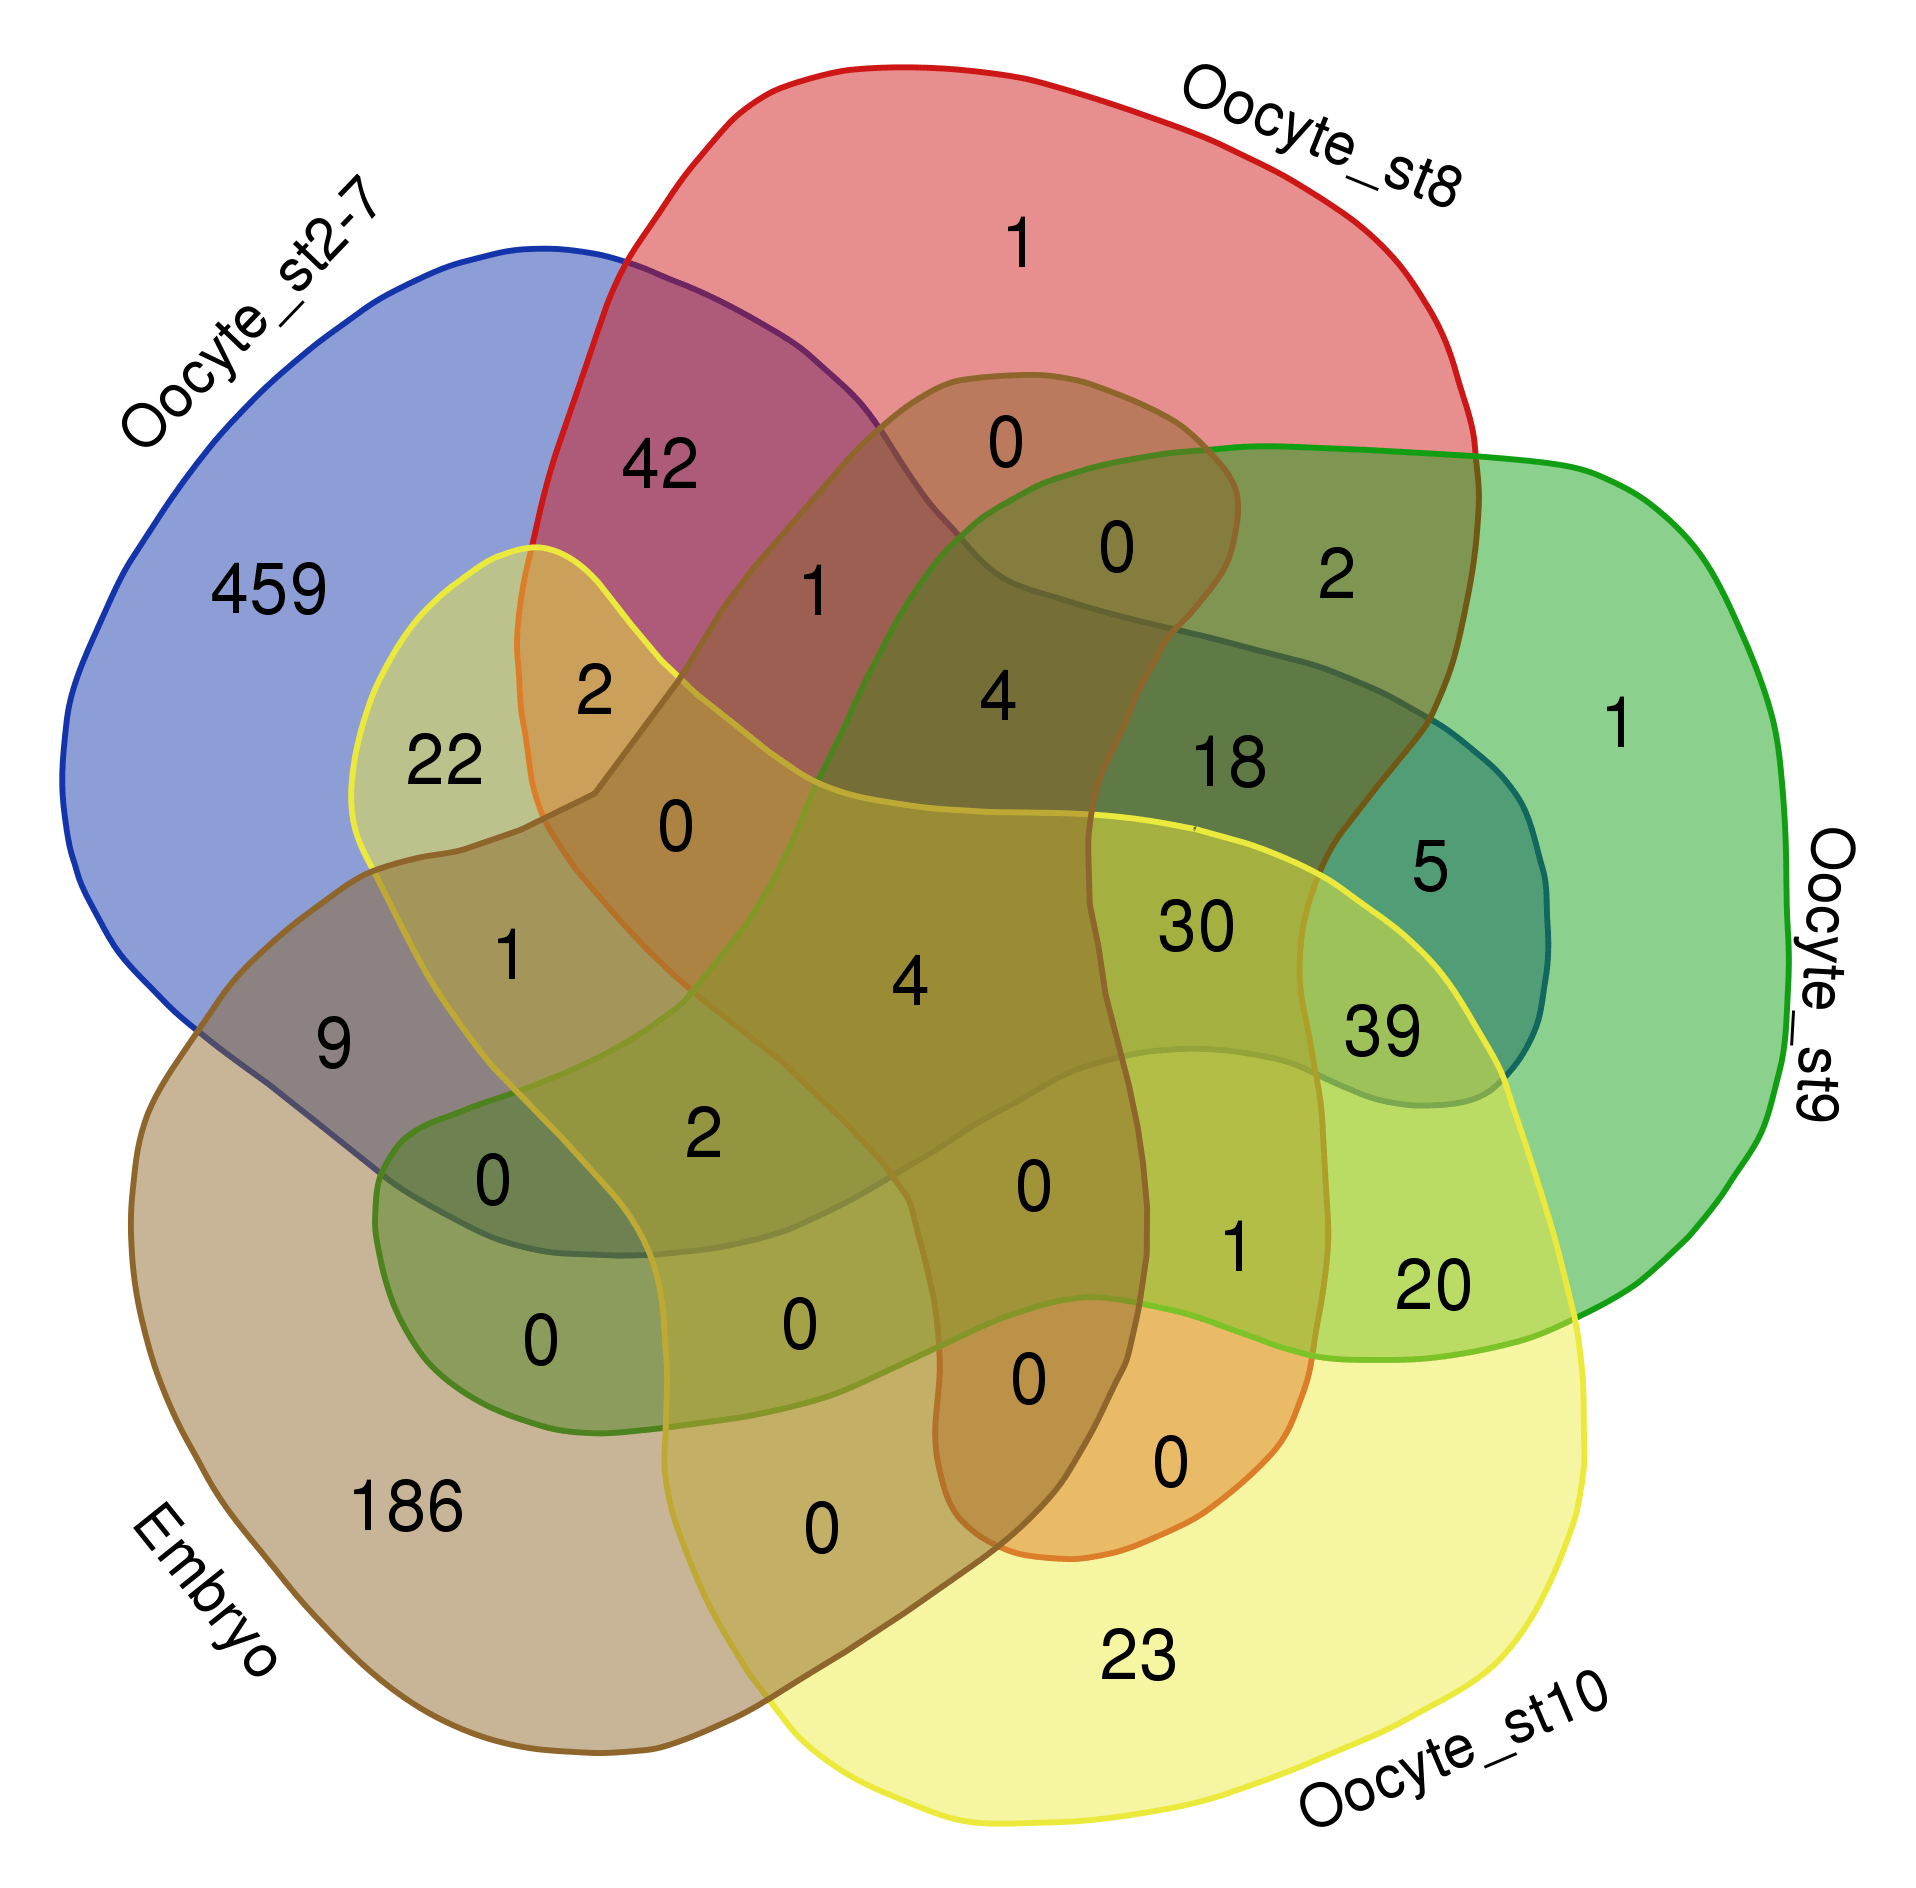 hight resolution of i find there are two problems for venn diagrams with more than three datasets first it takes long to read them and extract all information comparing four